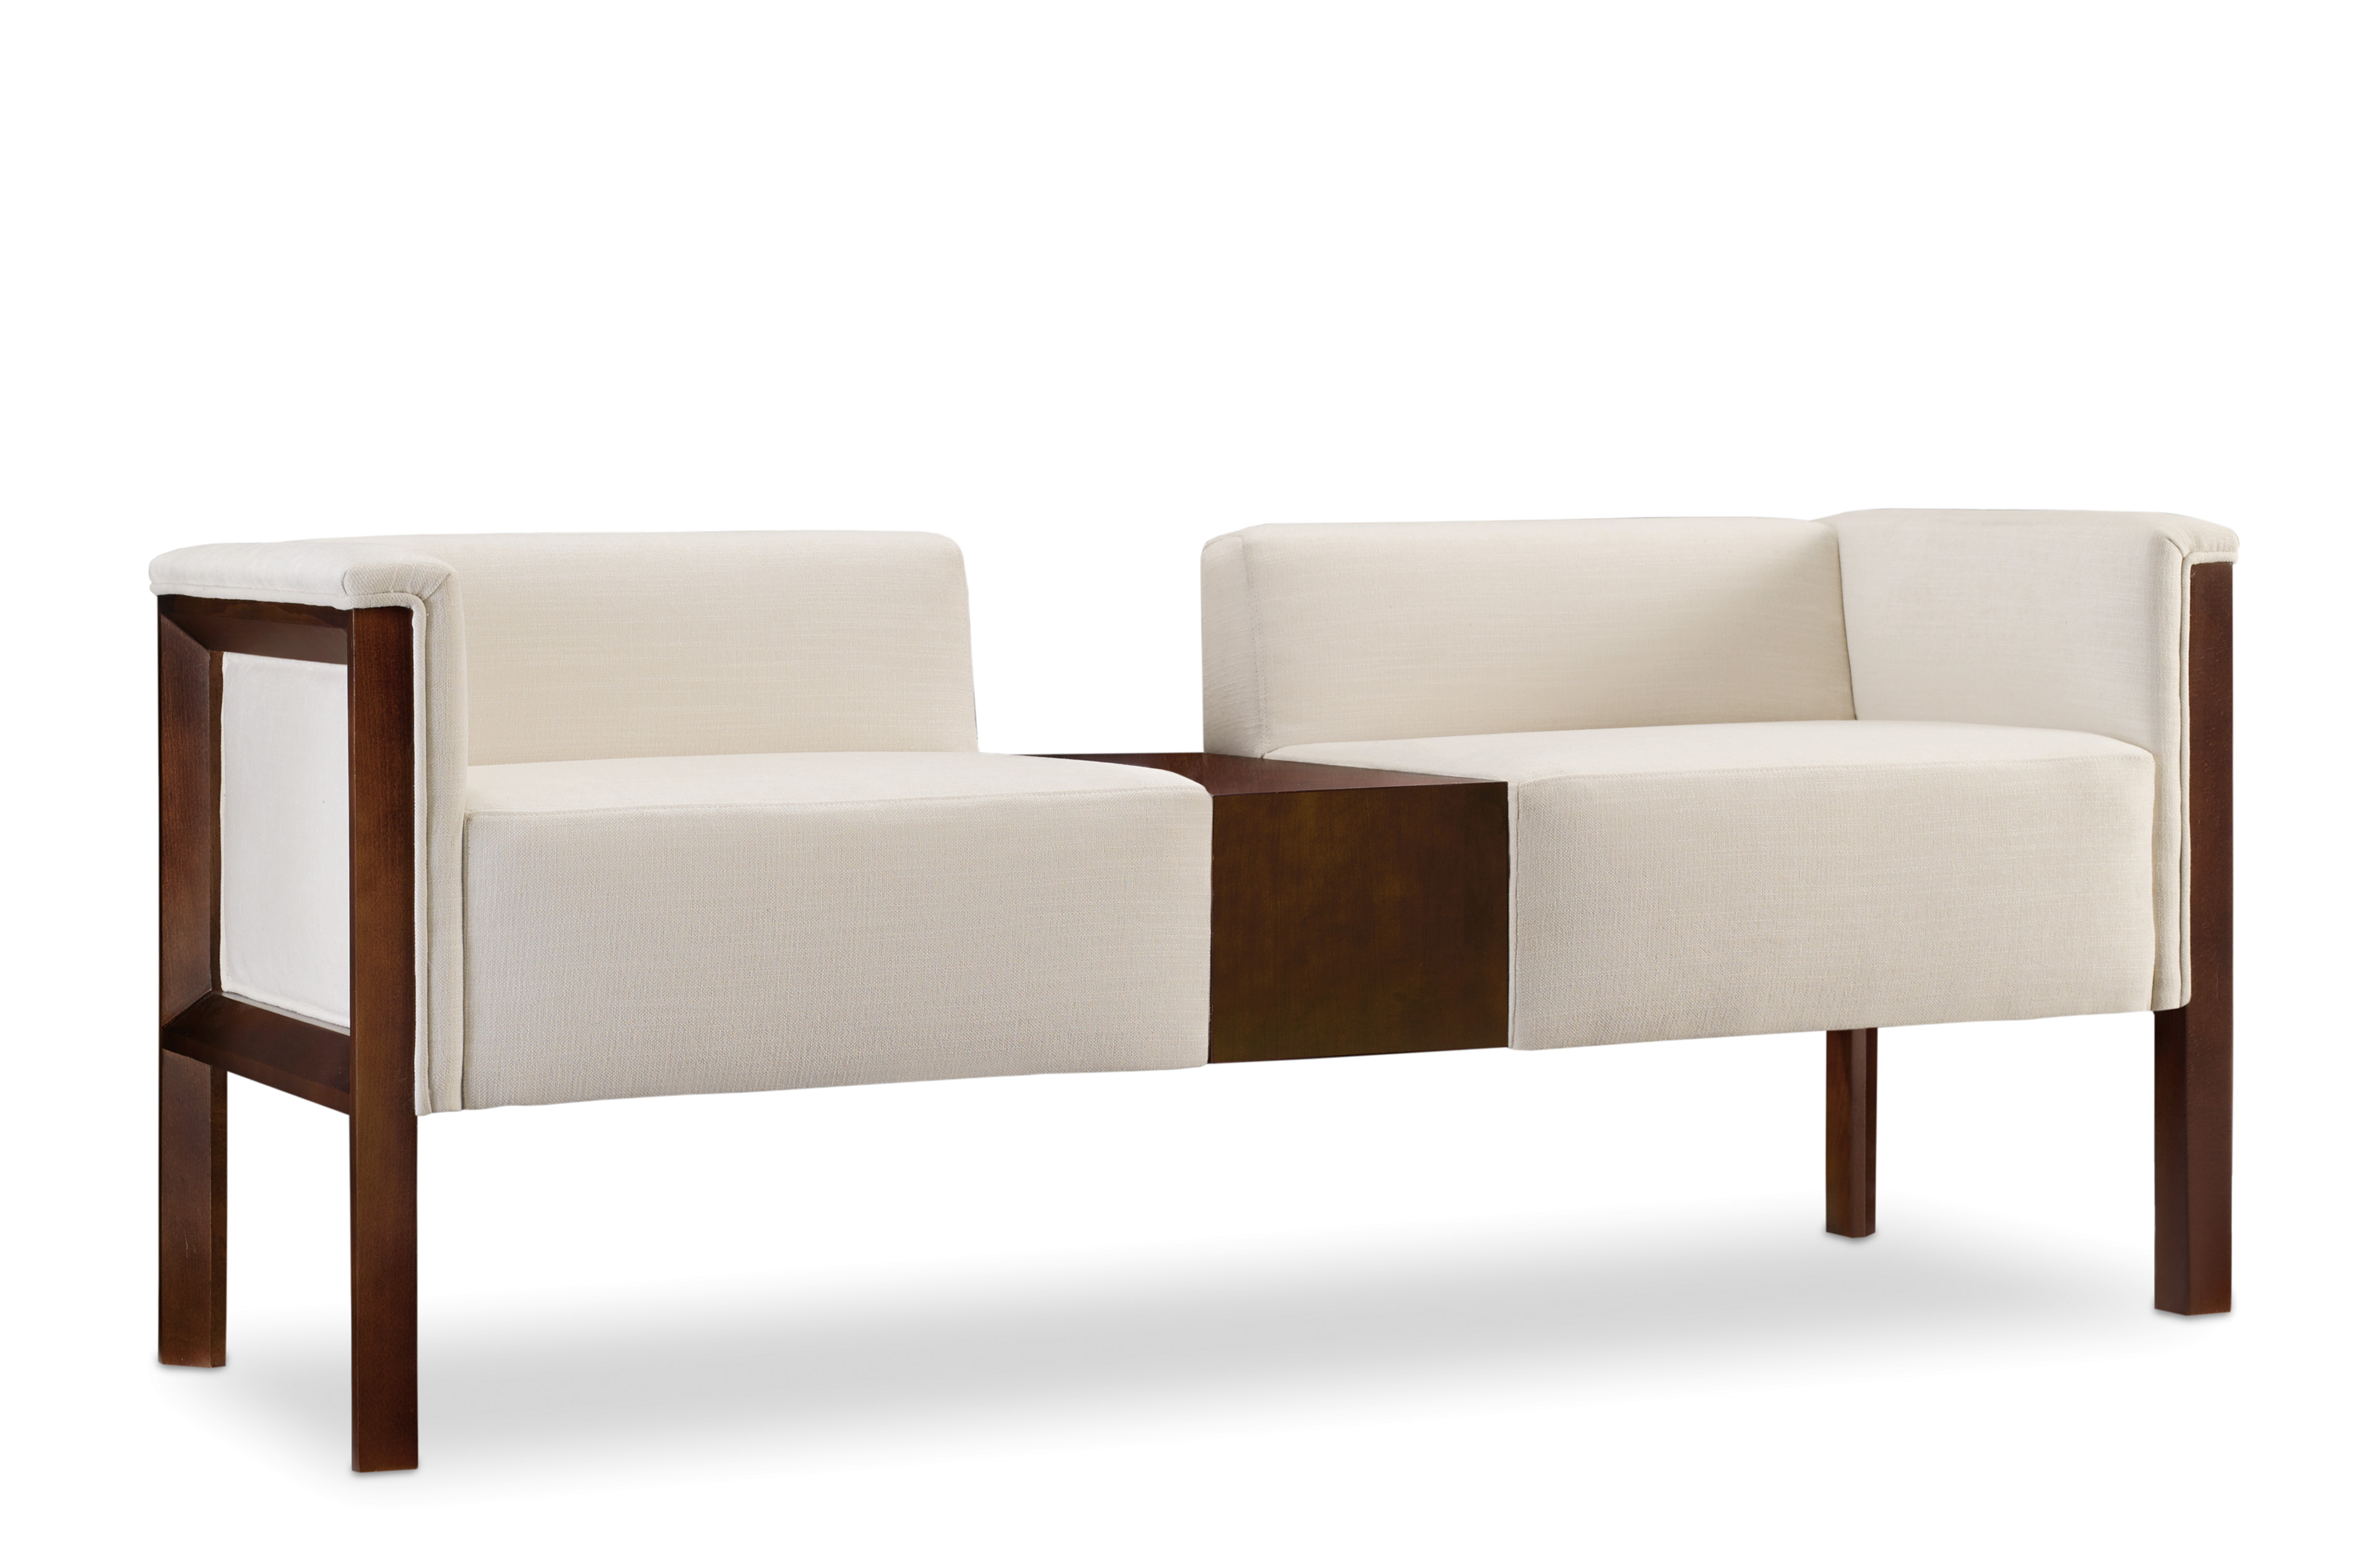 Benches | Product categories | H Contract Furniture